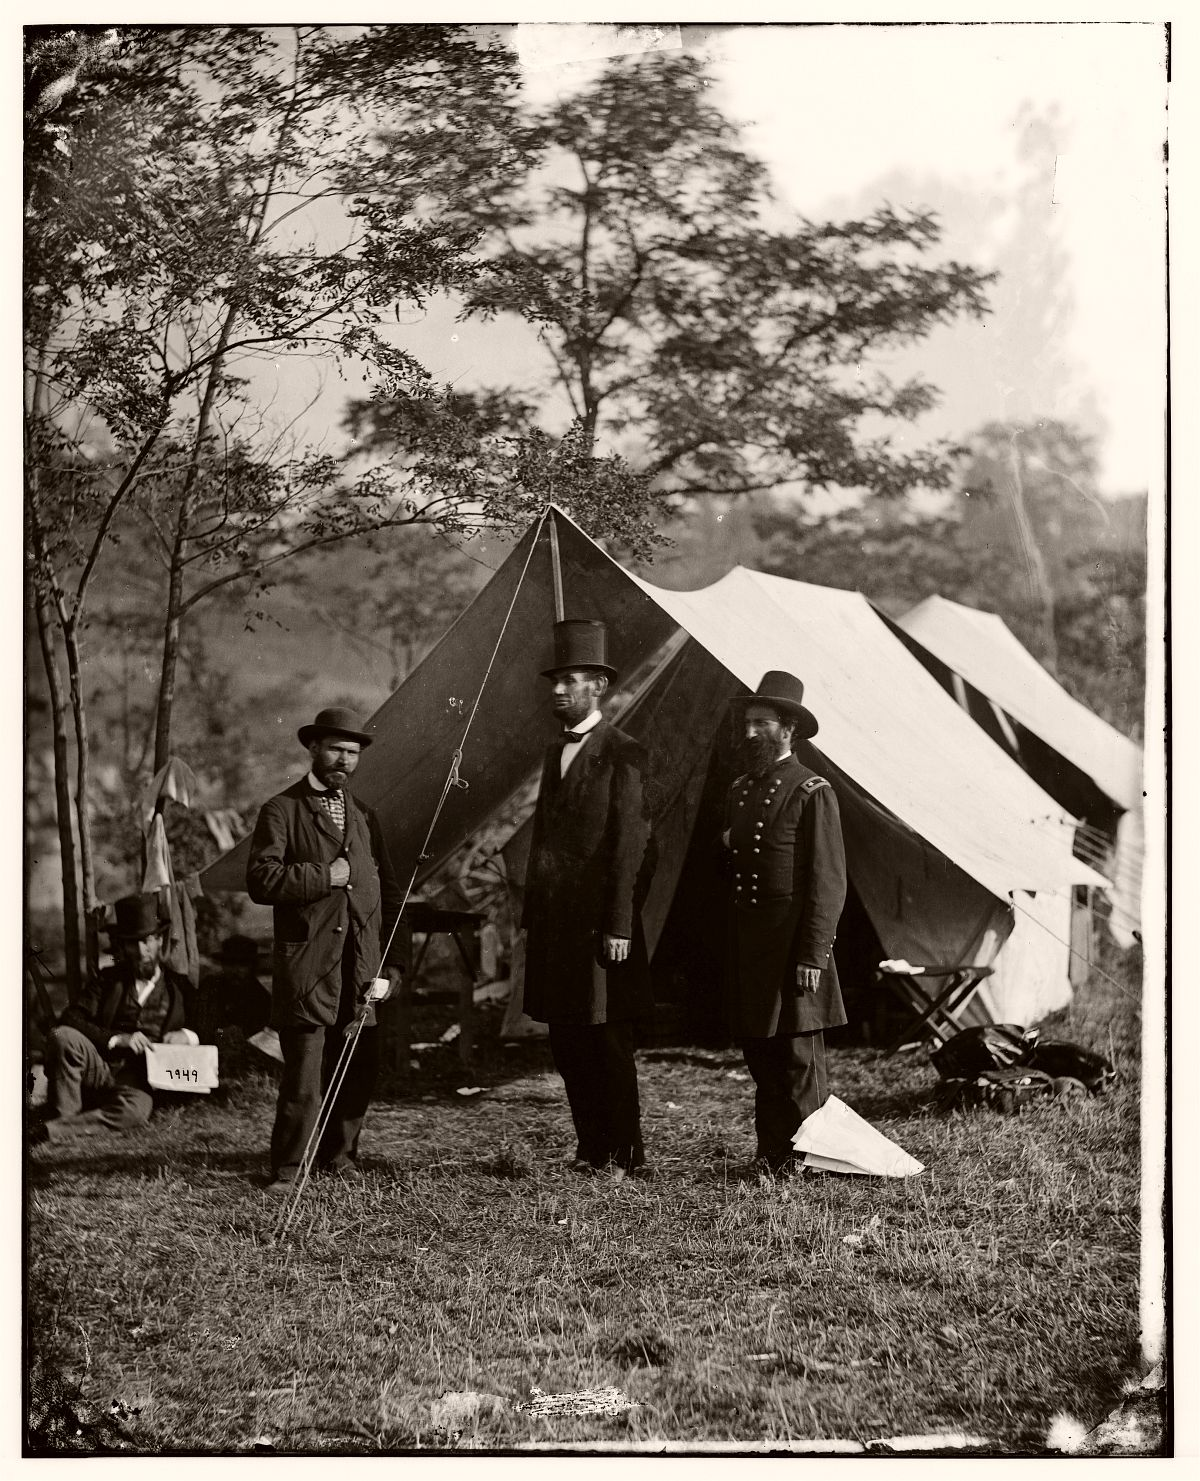 Abraham Lincoln, Allan Pinkerton and John Alexander McClernand, visiting the Antietam battlefield, 1862.